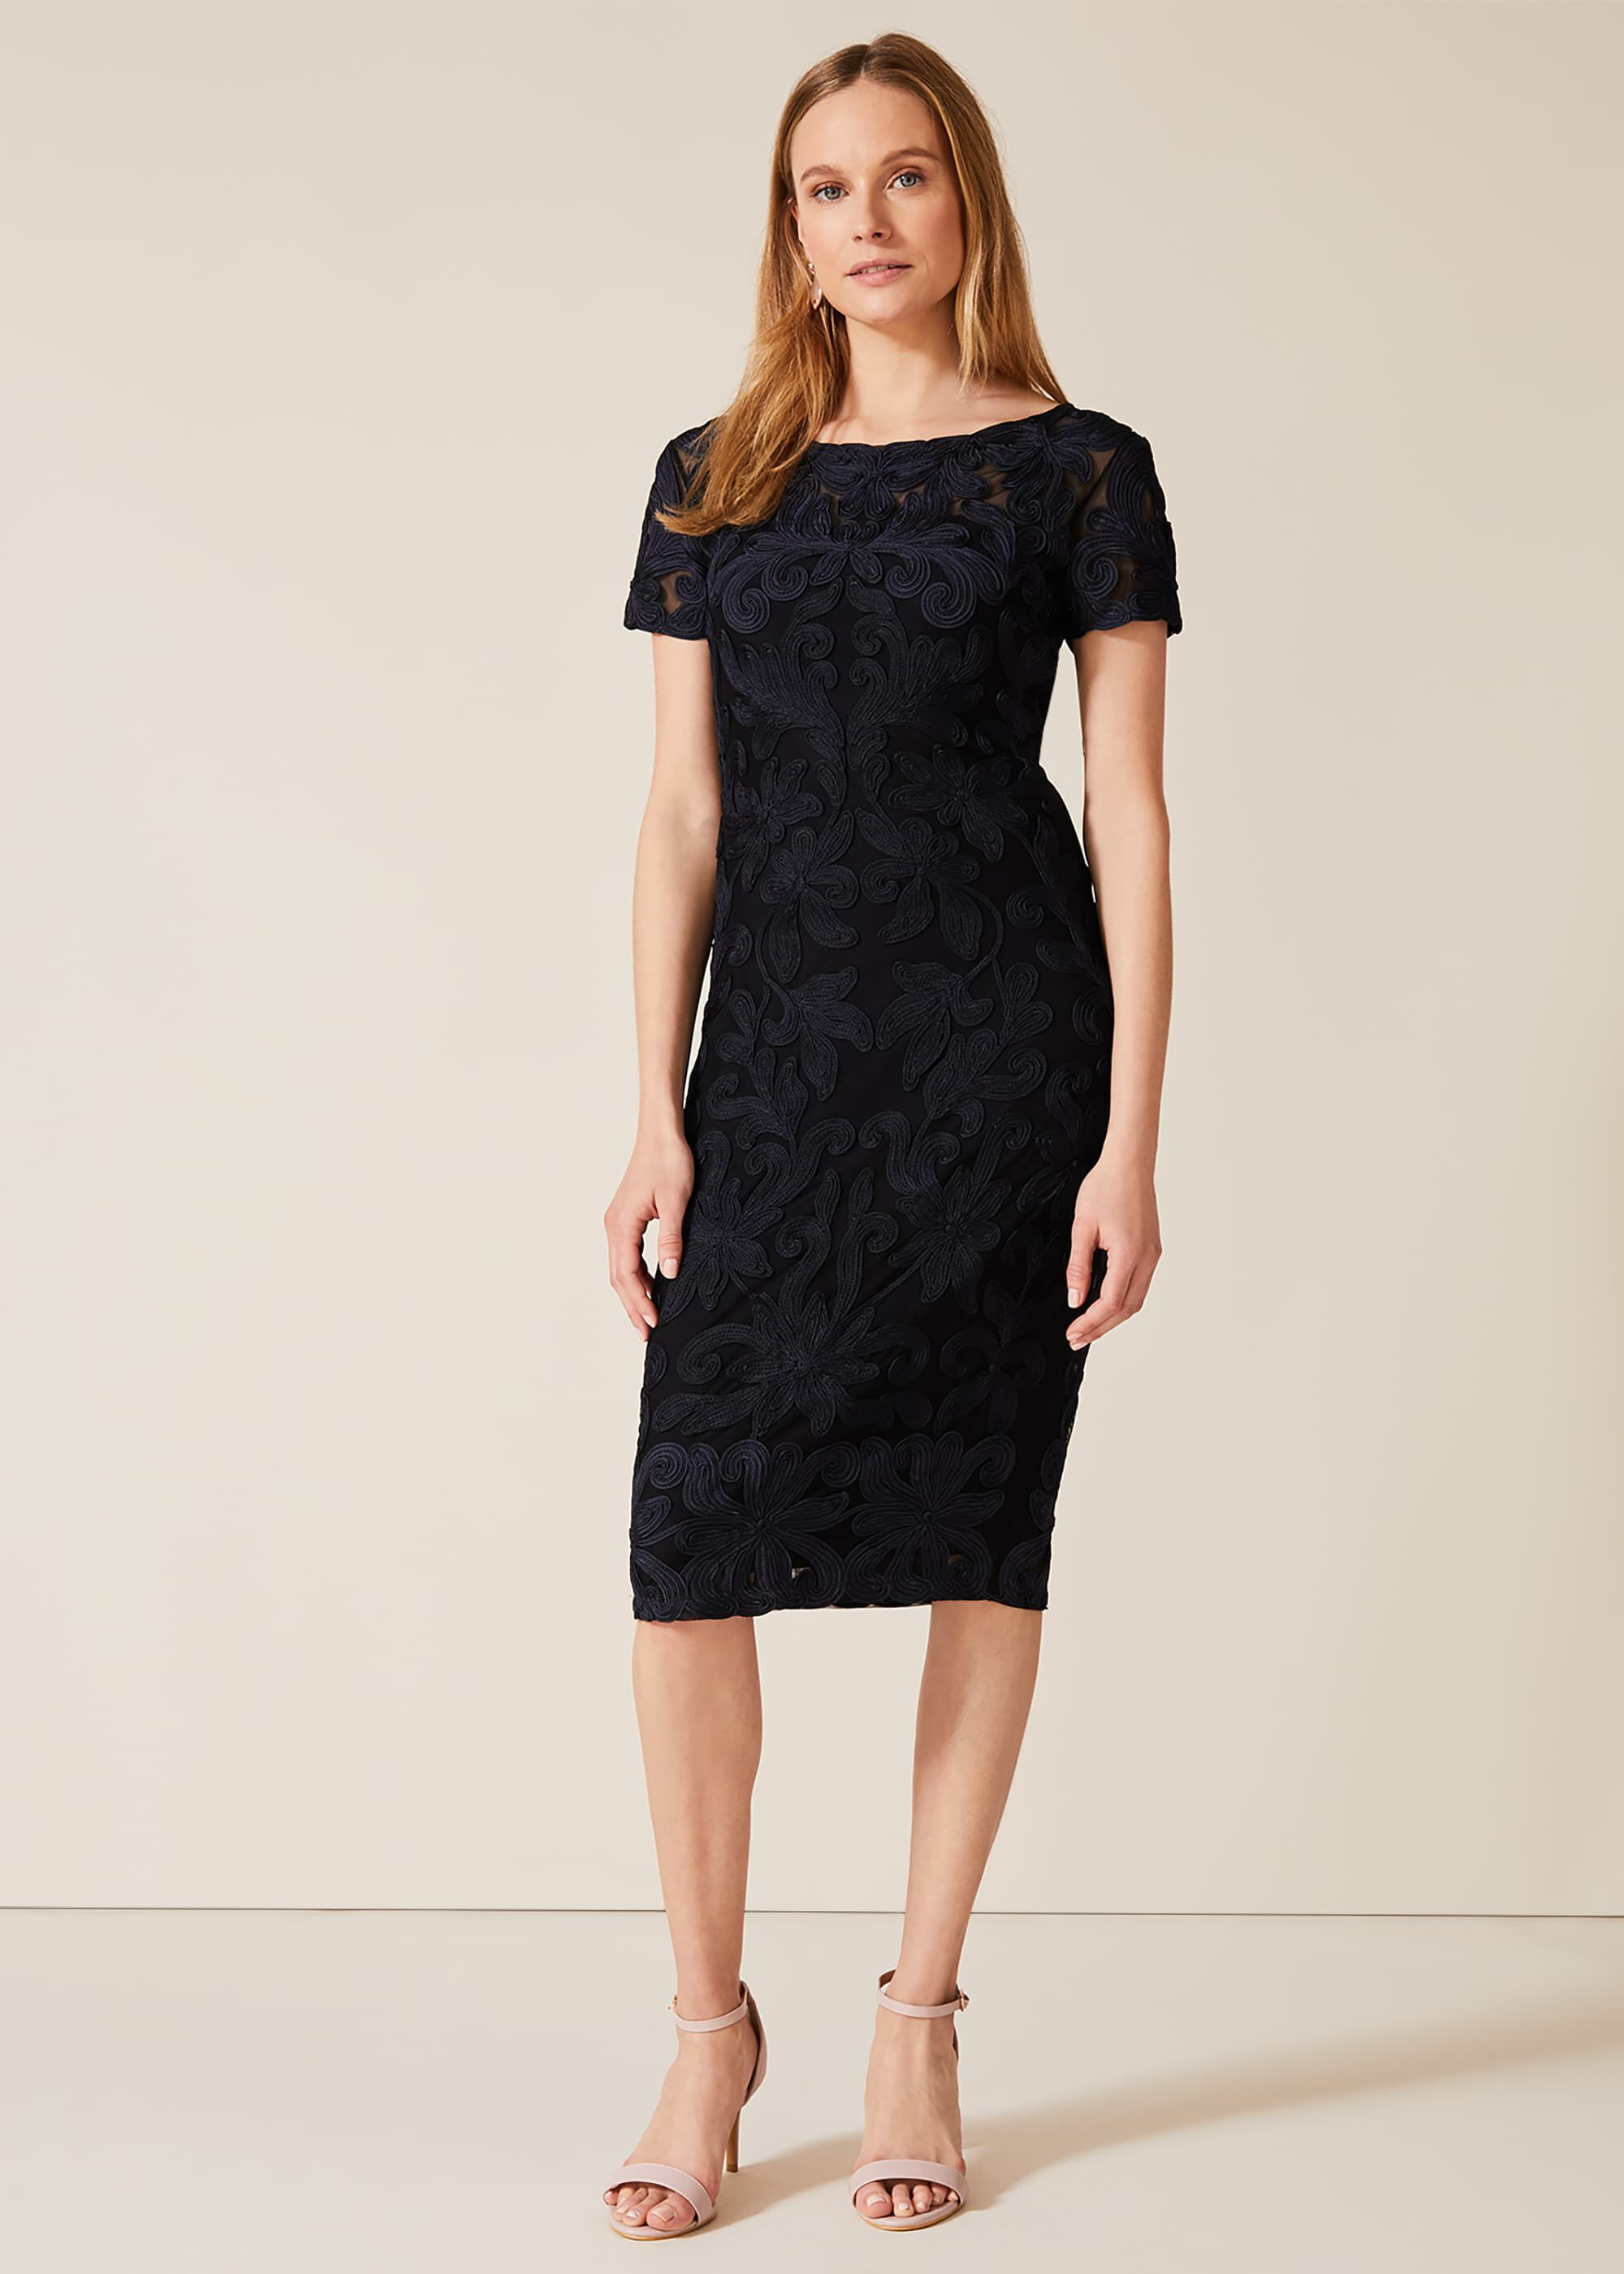 Phase Eight Anette Tapework Dress, Black, Fitted, Occasion Dress